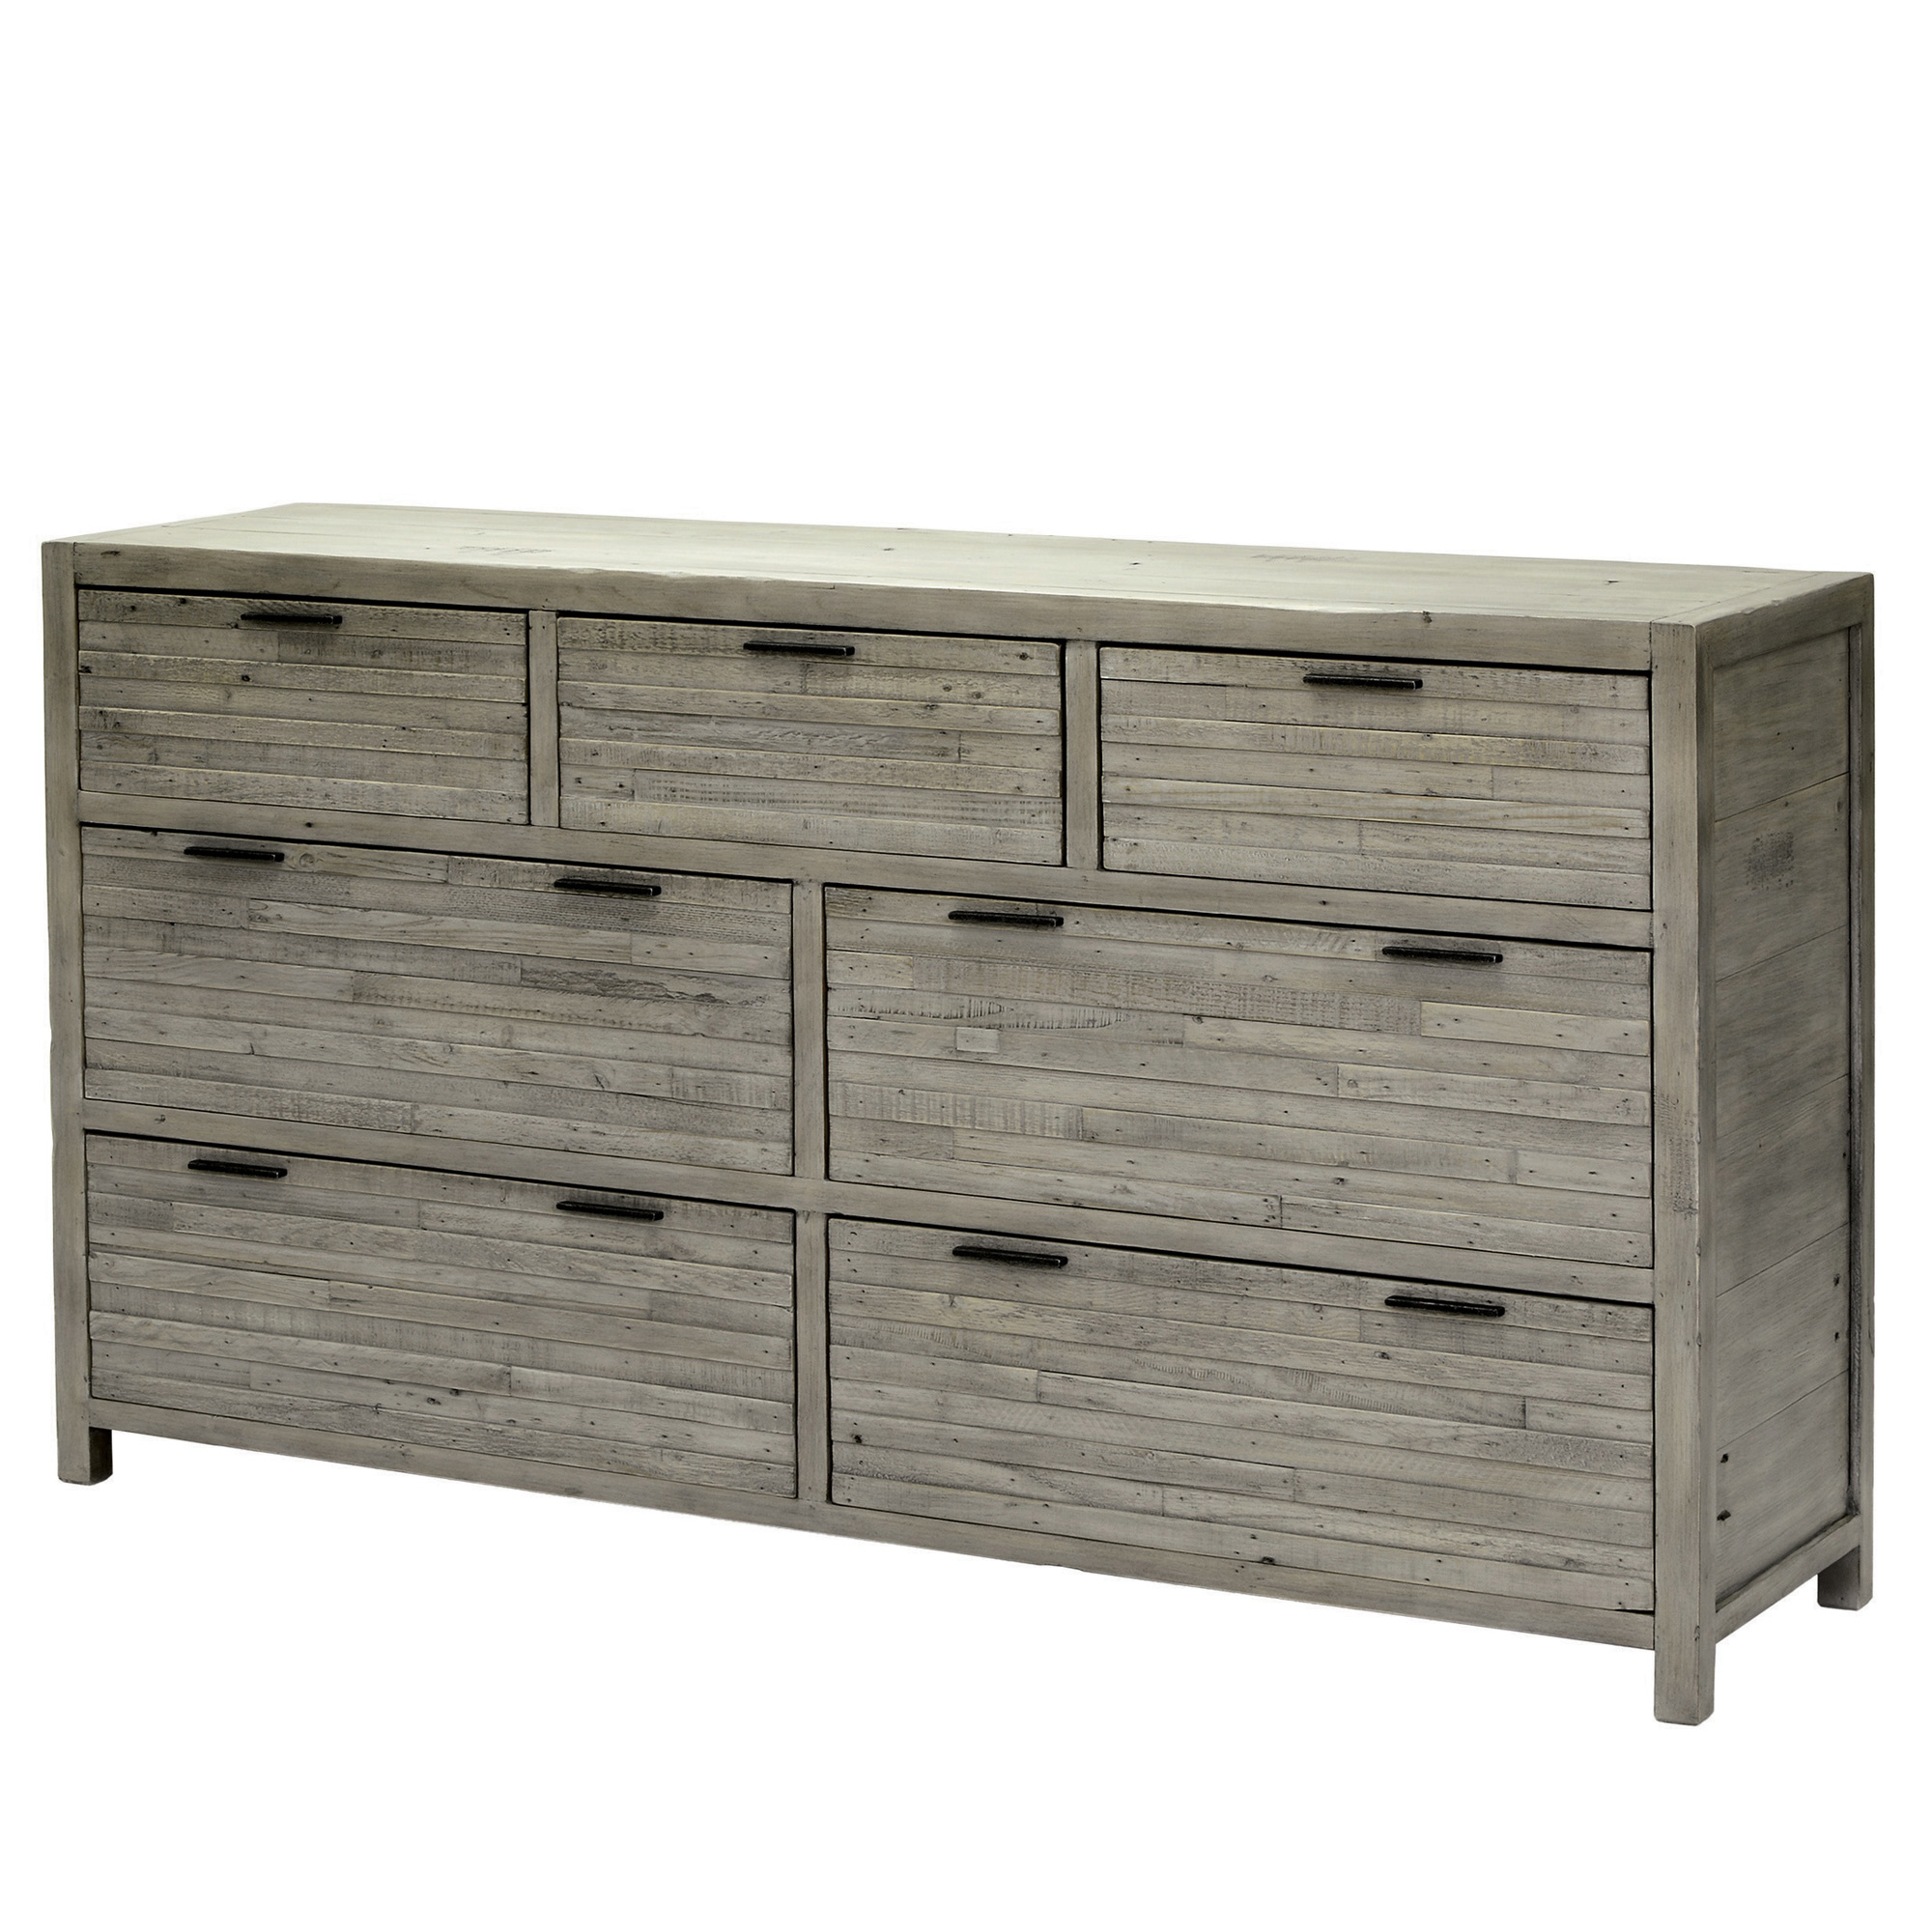 Siena Seven Drawer Wide Chest